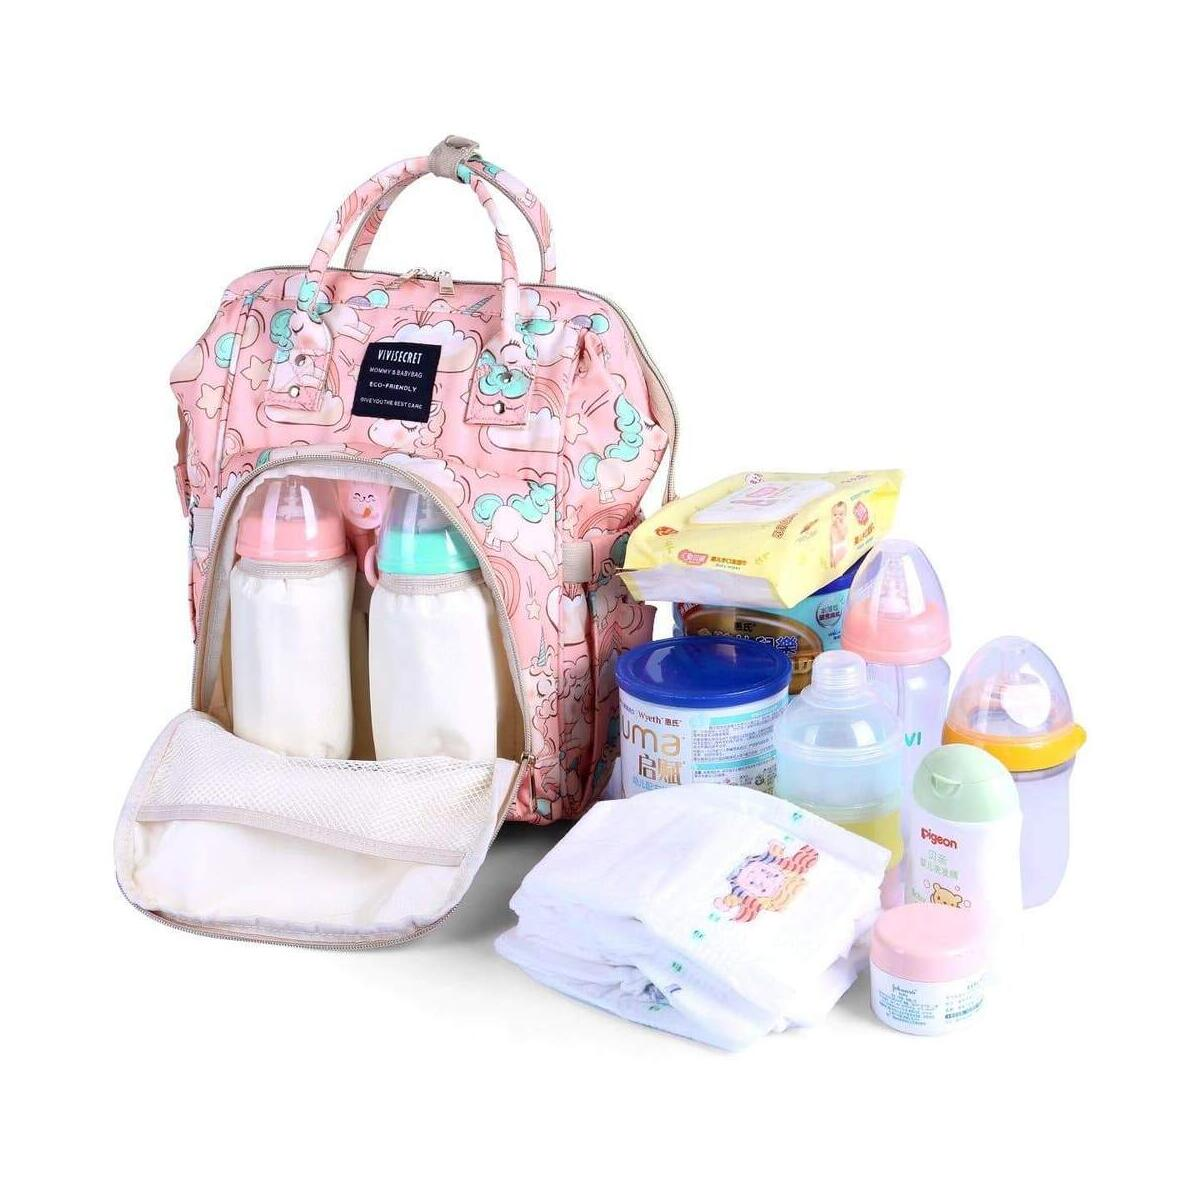 Trend Diaper Bag Organizer Insulated Waterproof Large Capacity Travel Nappy Backpack Tote Shoulder Nappy Bags for Mommy Backpack Durable and Stylish